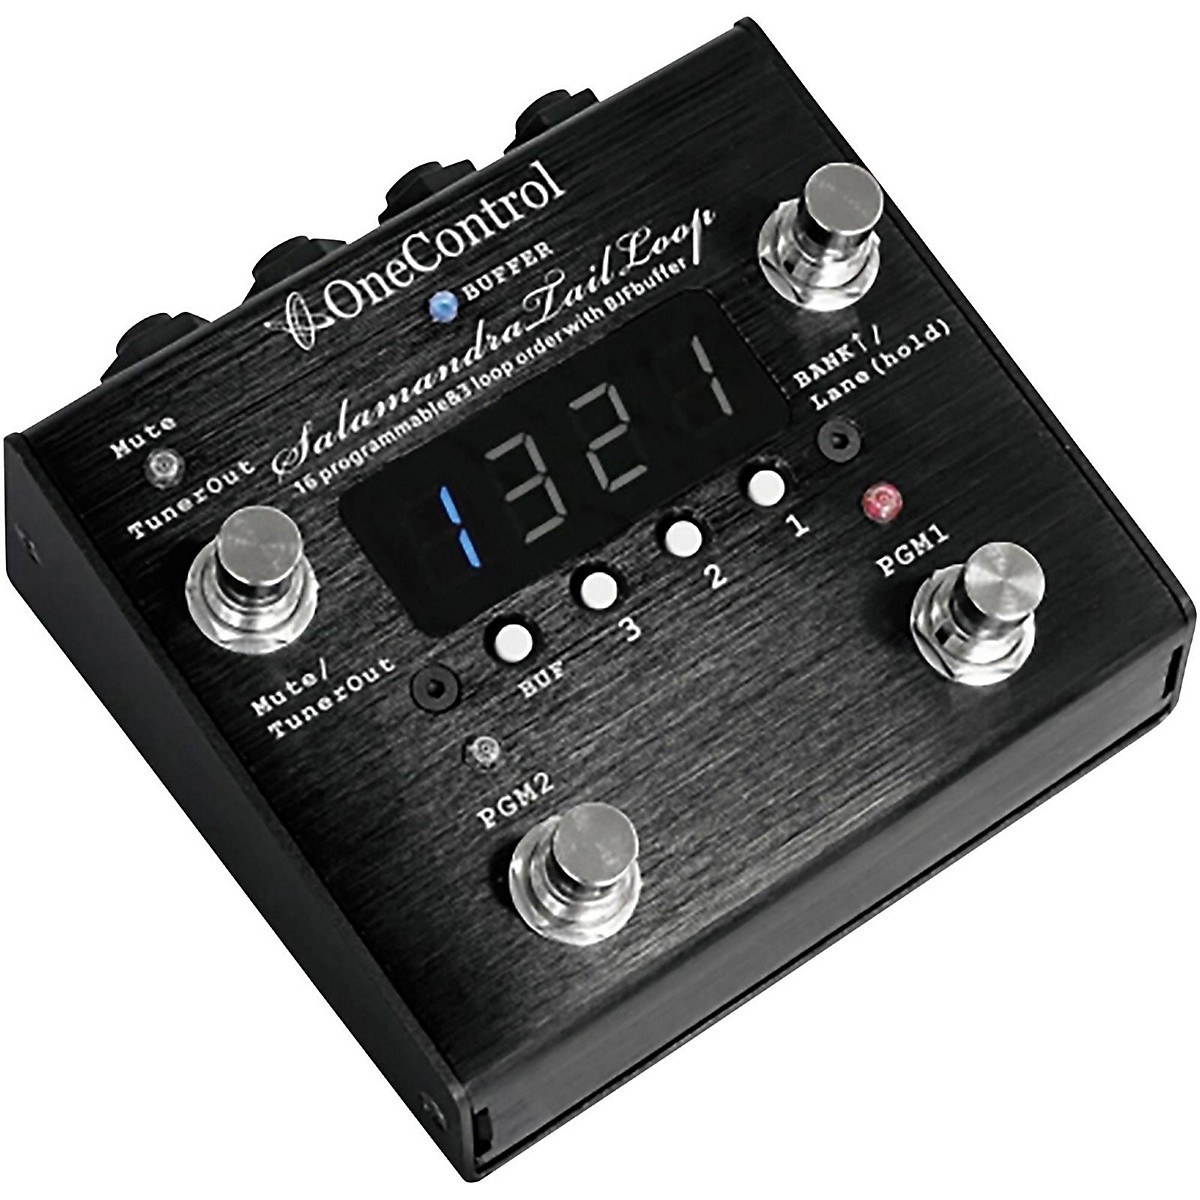 One Control Salamandra Tail Loop Programmable Effect Switcher